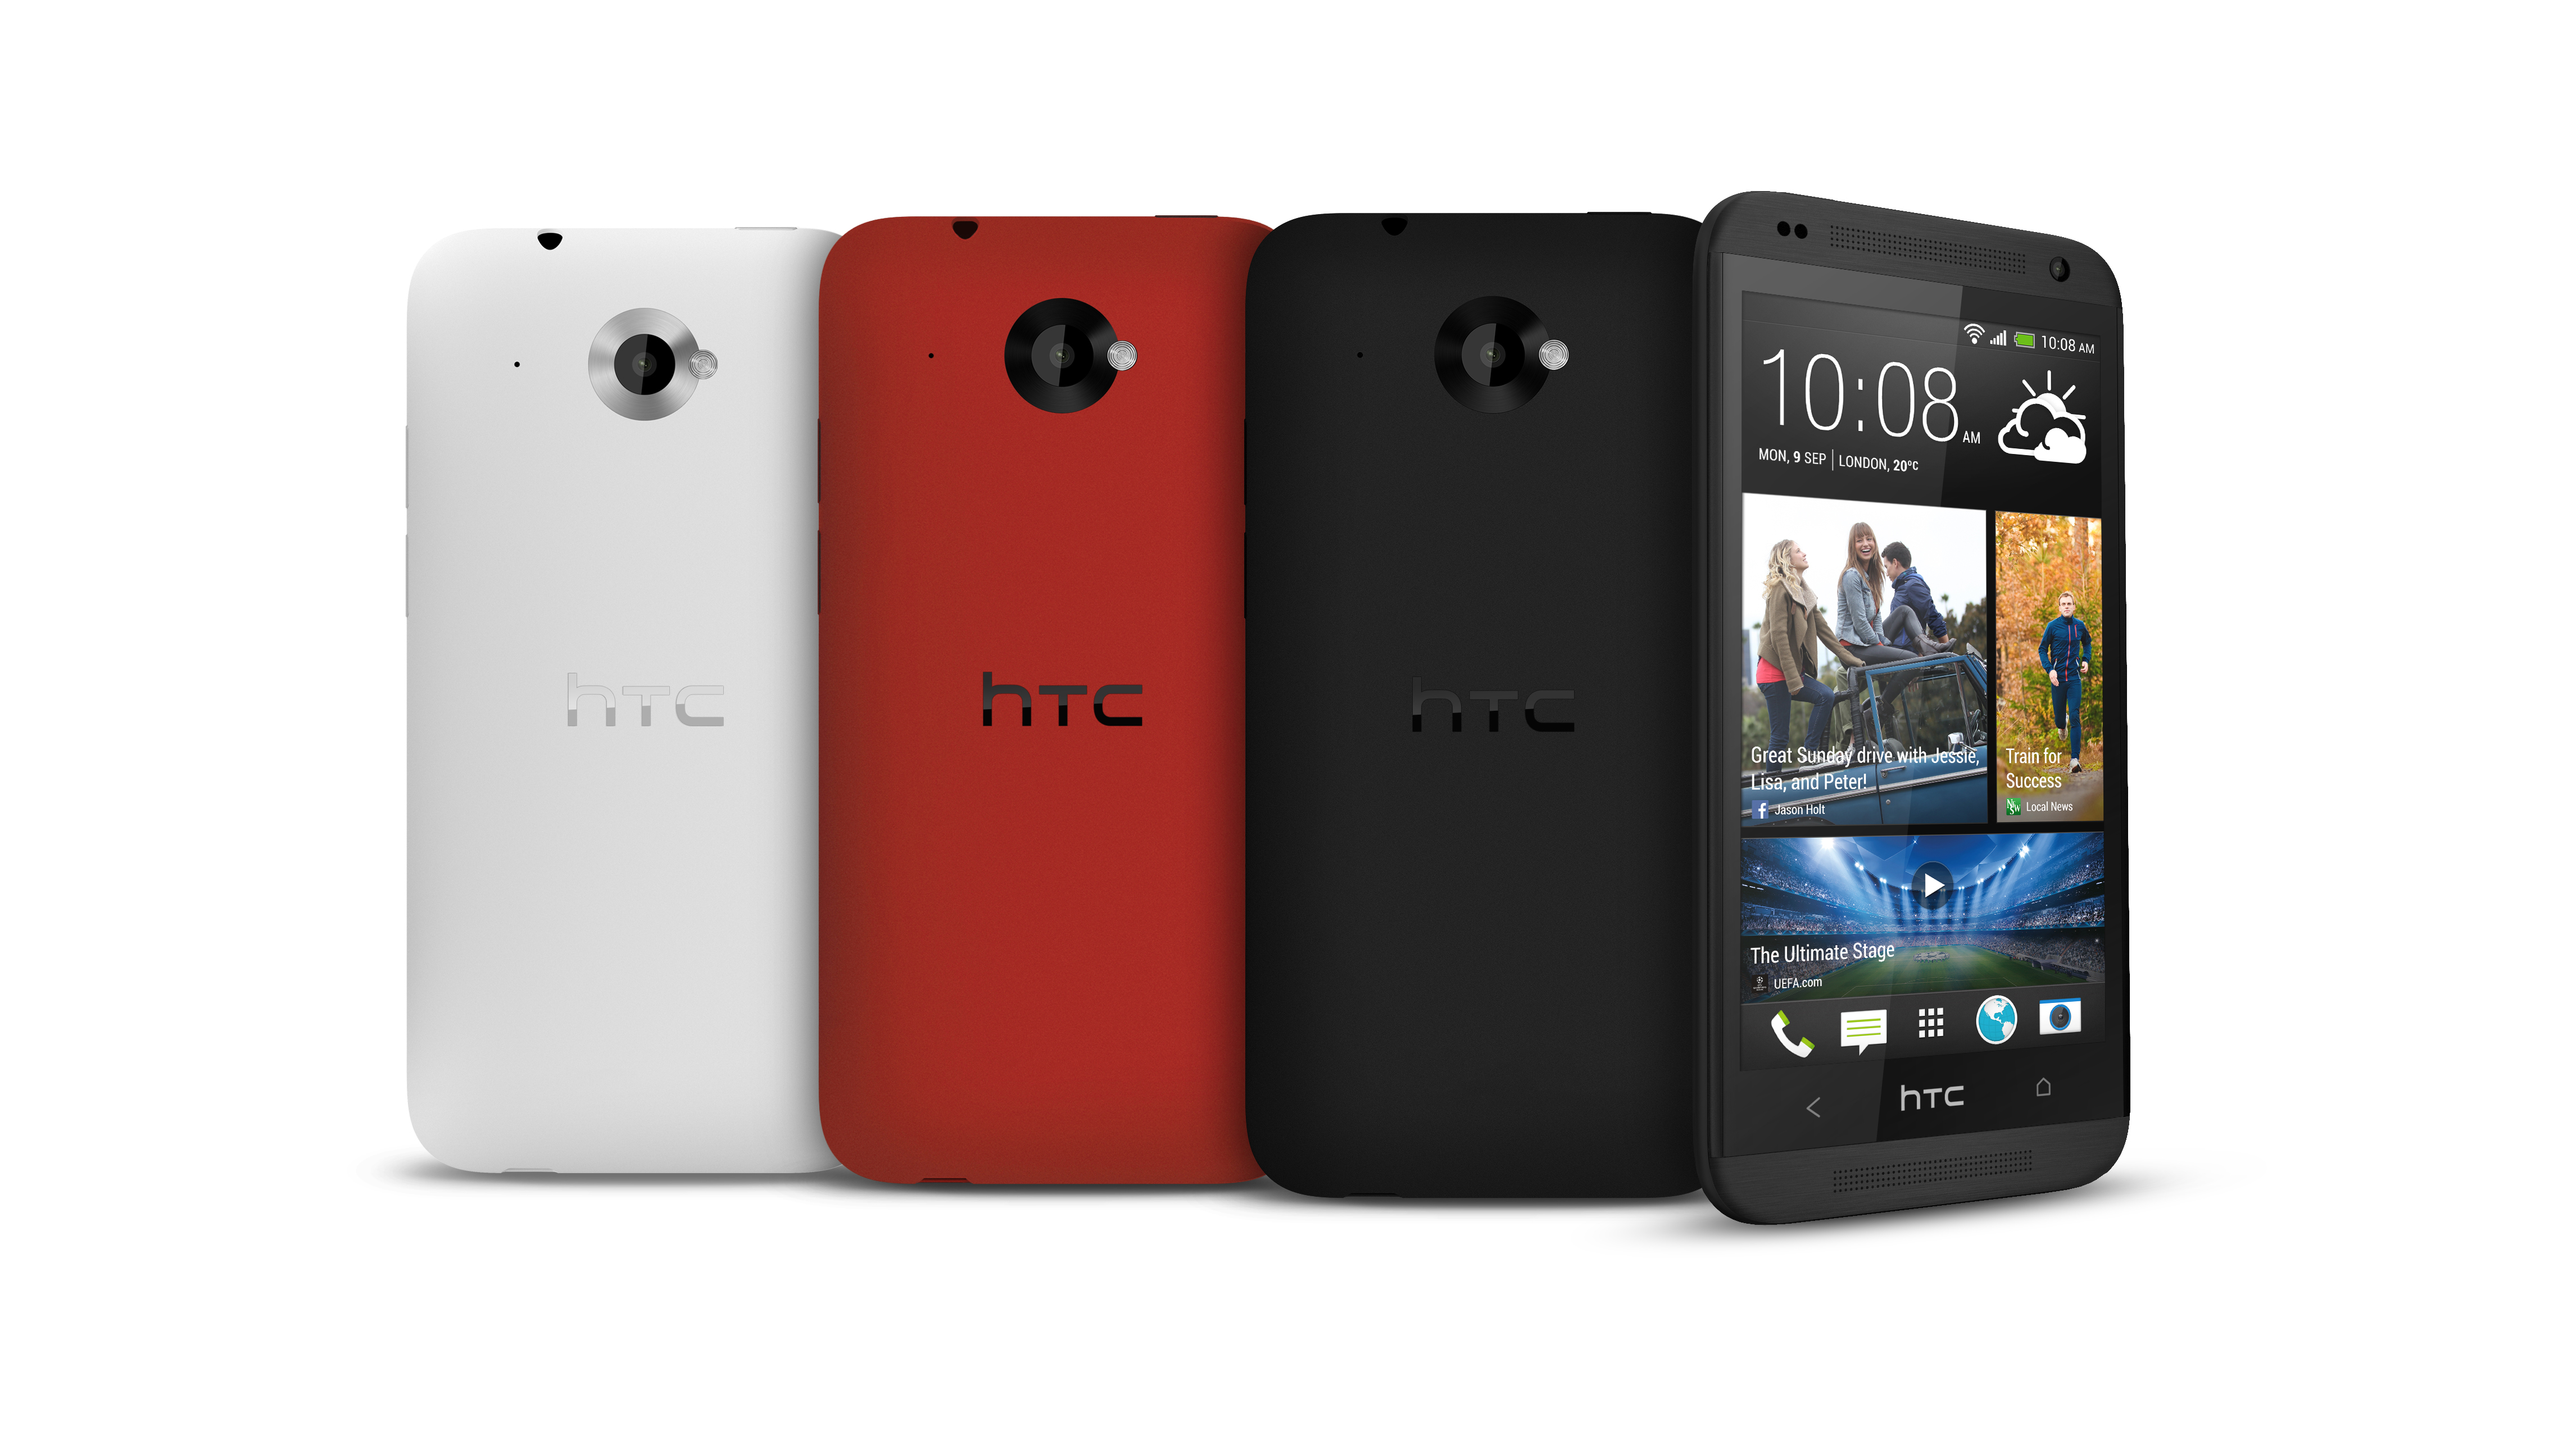 HTC Desire 601 dual SIM won t play MOV videos how to fix